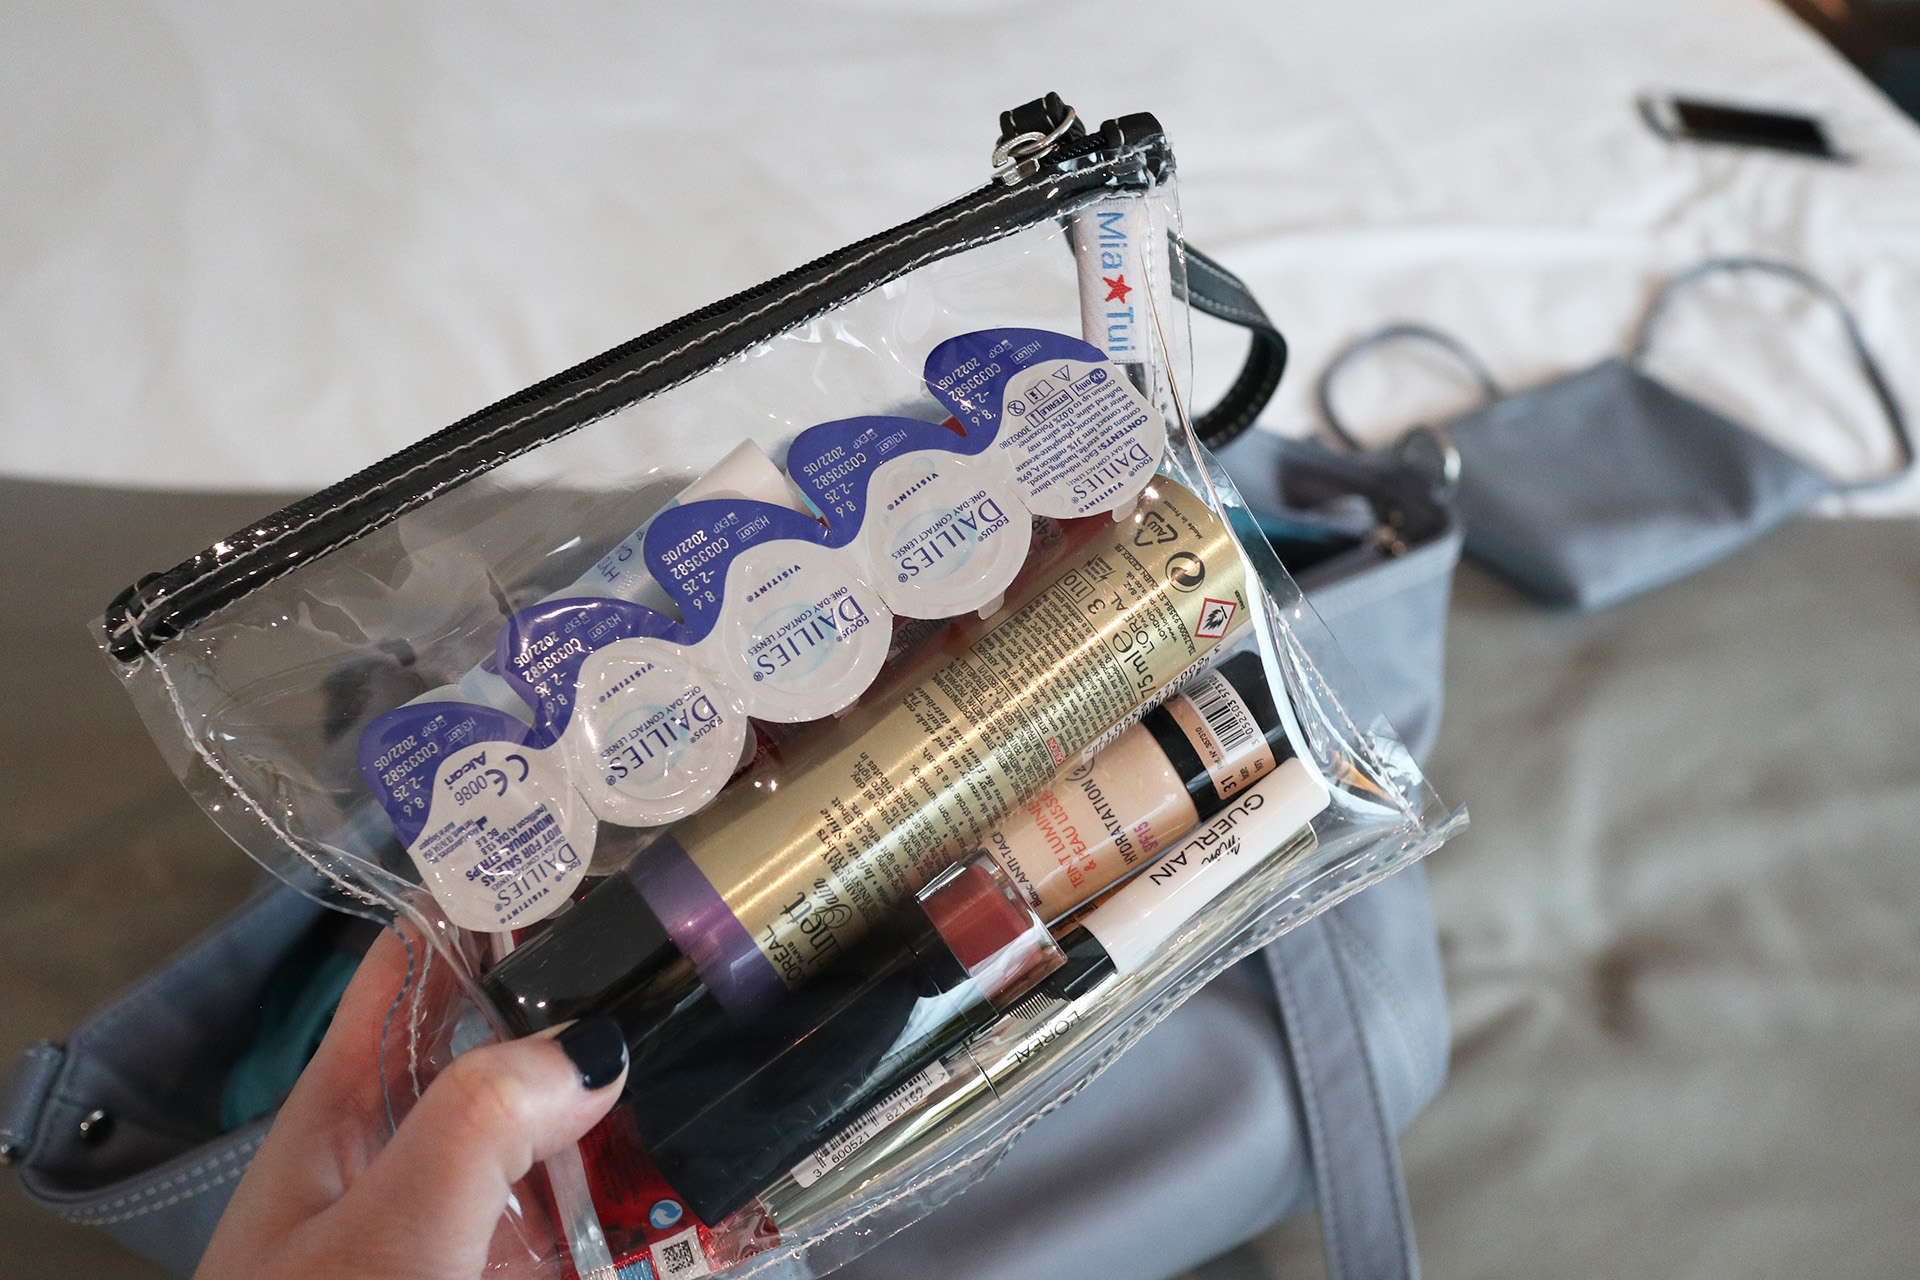 The Mia Tui Jennie comes with this integrated clear bag, perfect for liquids if flying